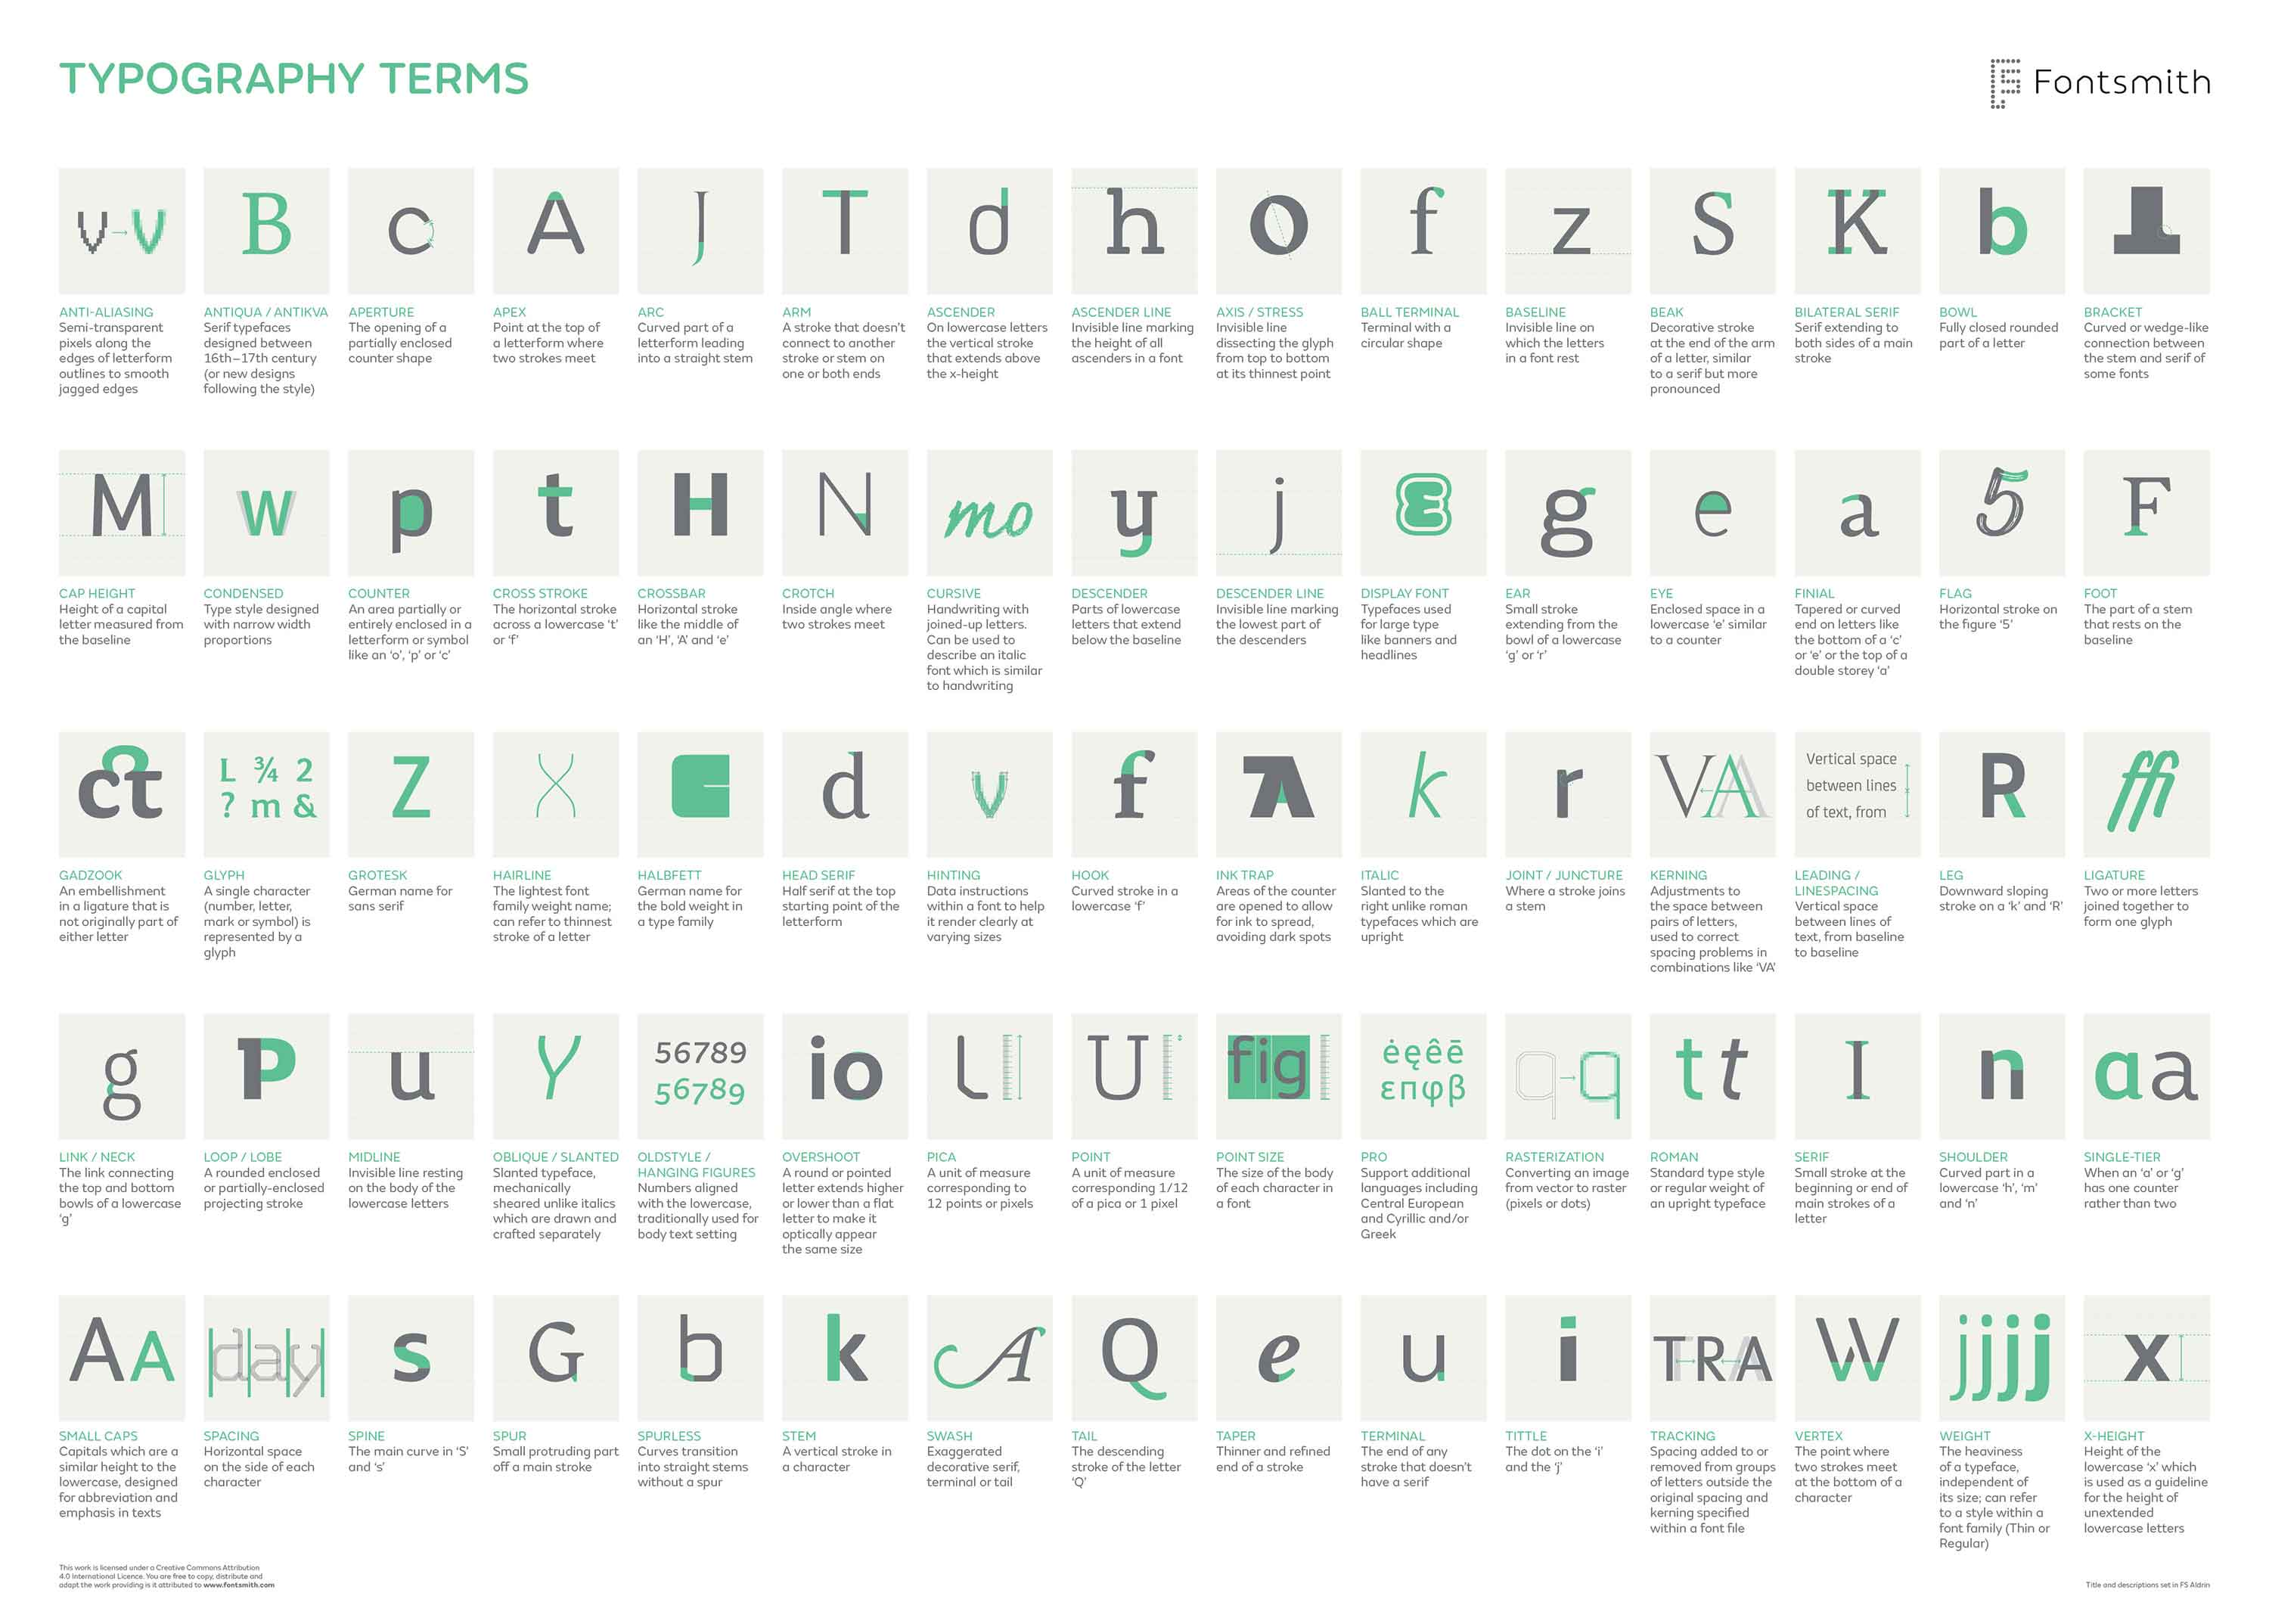 Infographic Fontsmith S Complete Guide To Typography